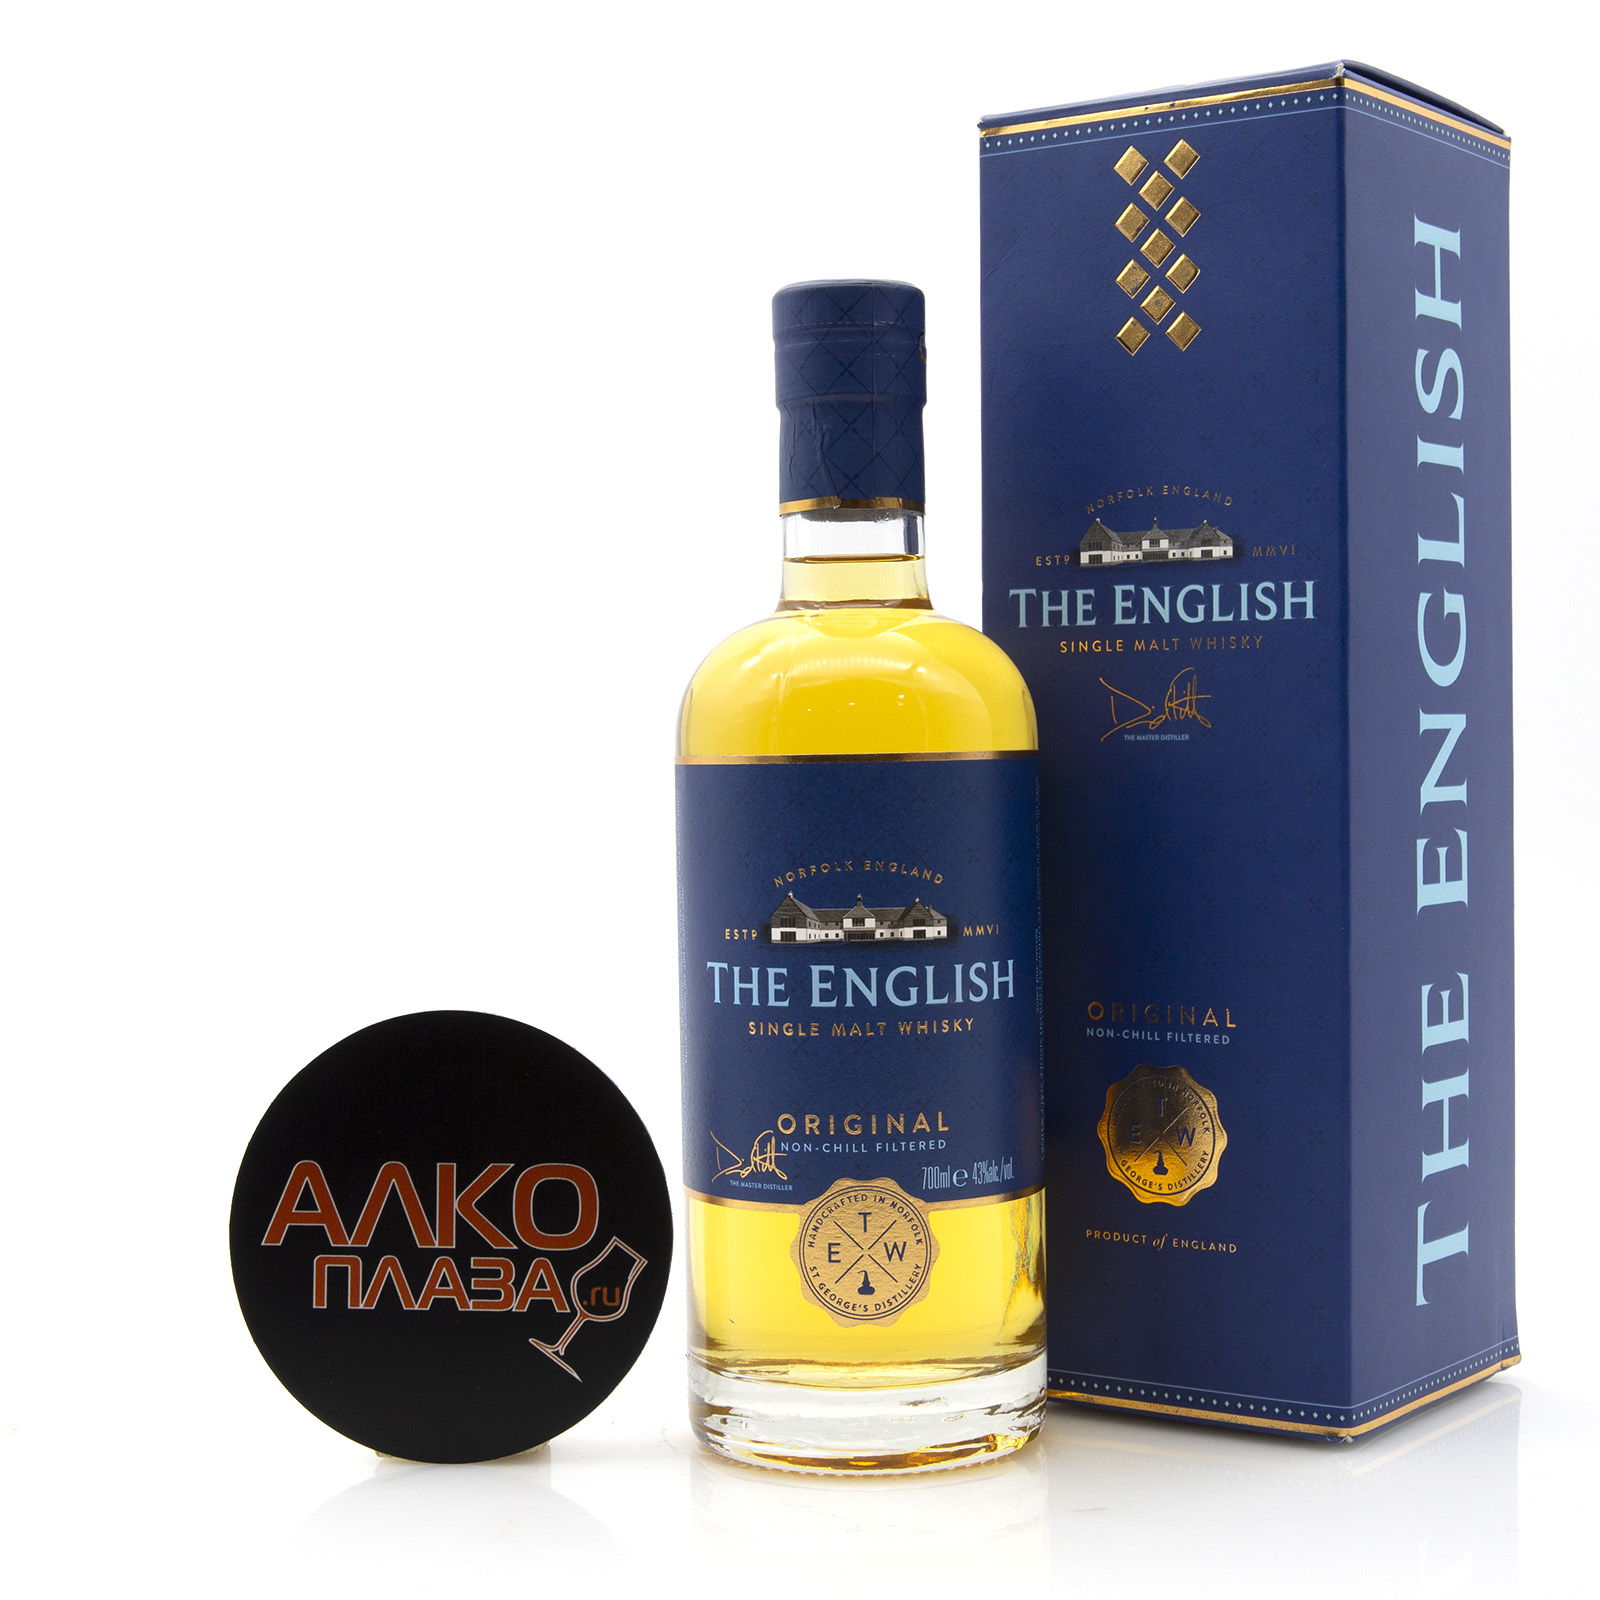 English Whisky Original Single Malt 0.7l gift box - виски Инглиш Ориджинал Сингл Молт 0.7 в п/у